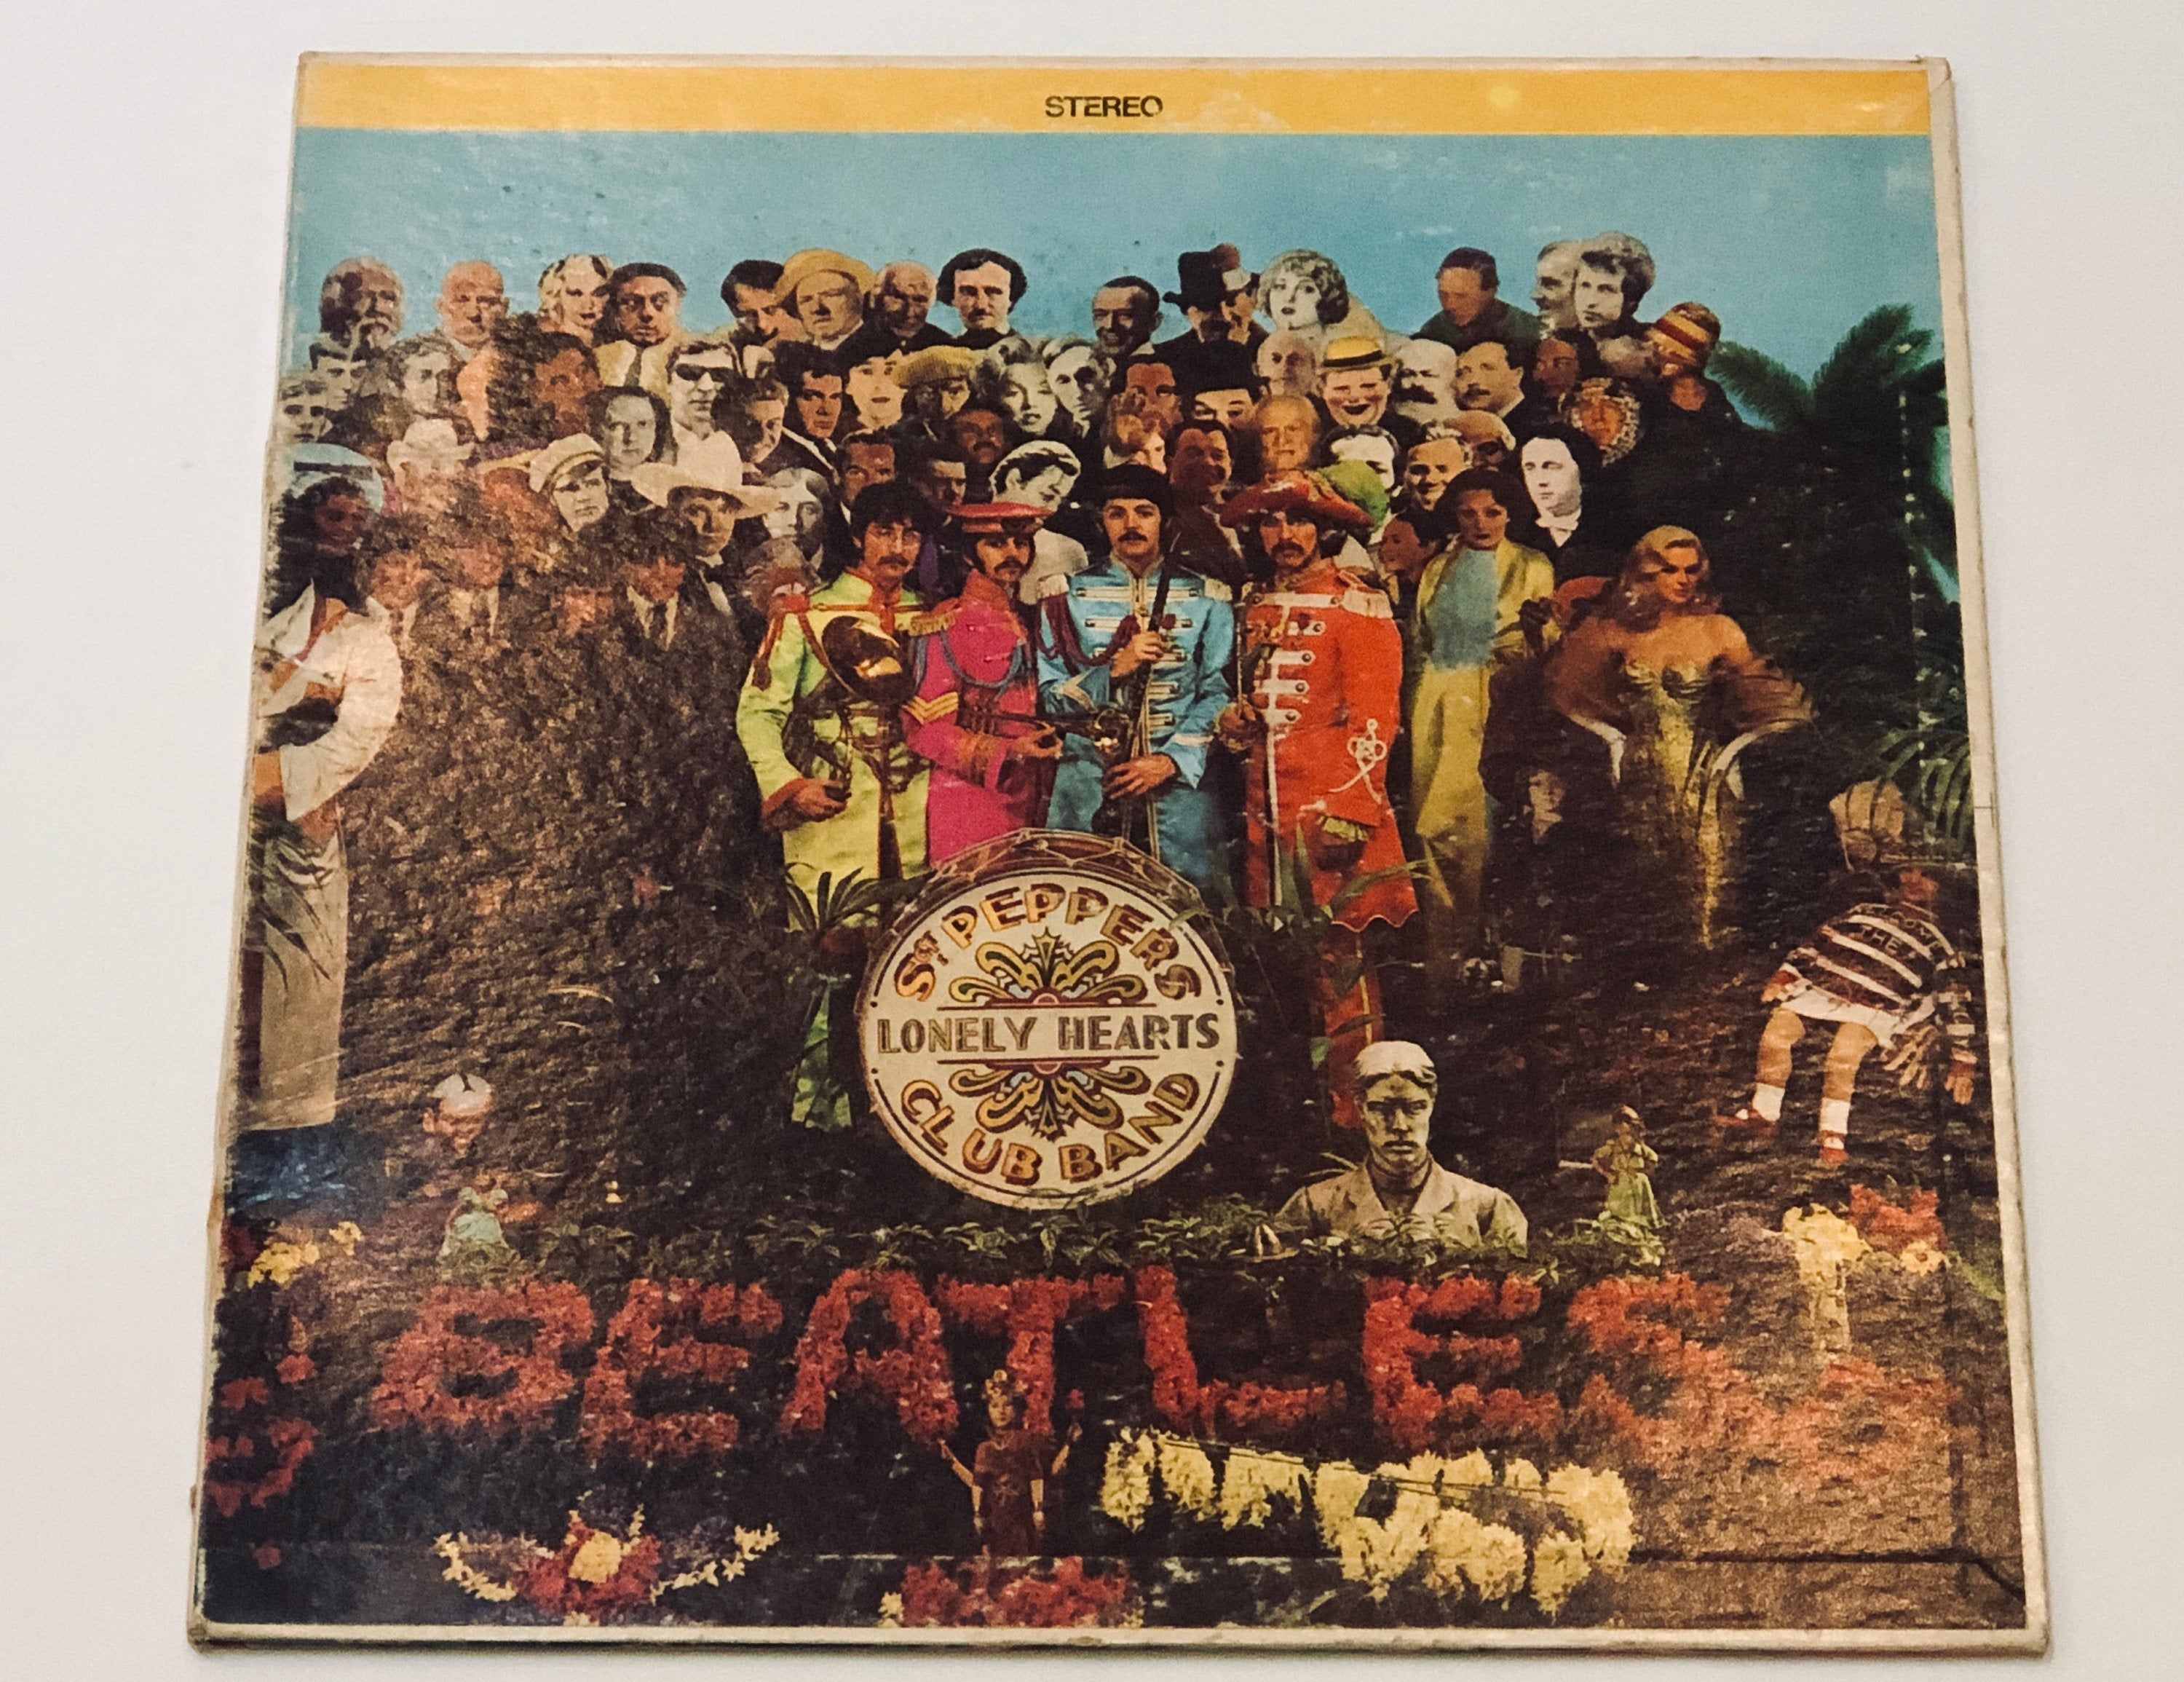 The Beatles Sgt Peppers Lonely Hearts Club Band W Poster Etsy Sgt Peppers Lonely Hearts Club Band Beatles Sgt Pepper Lonely Heart